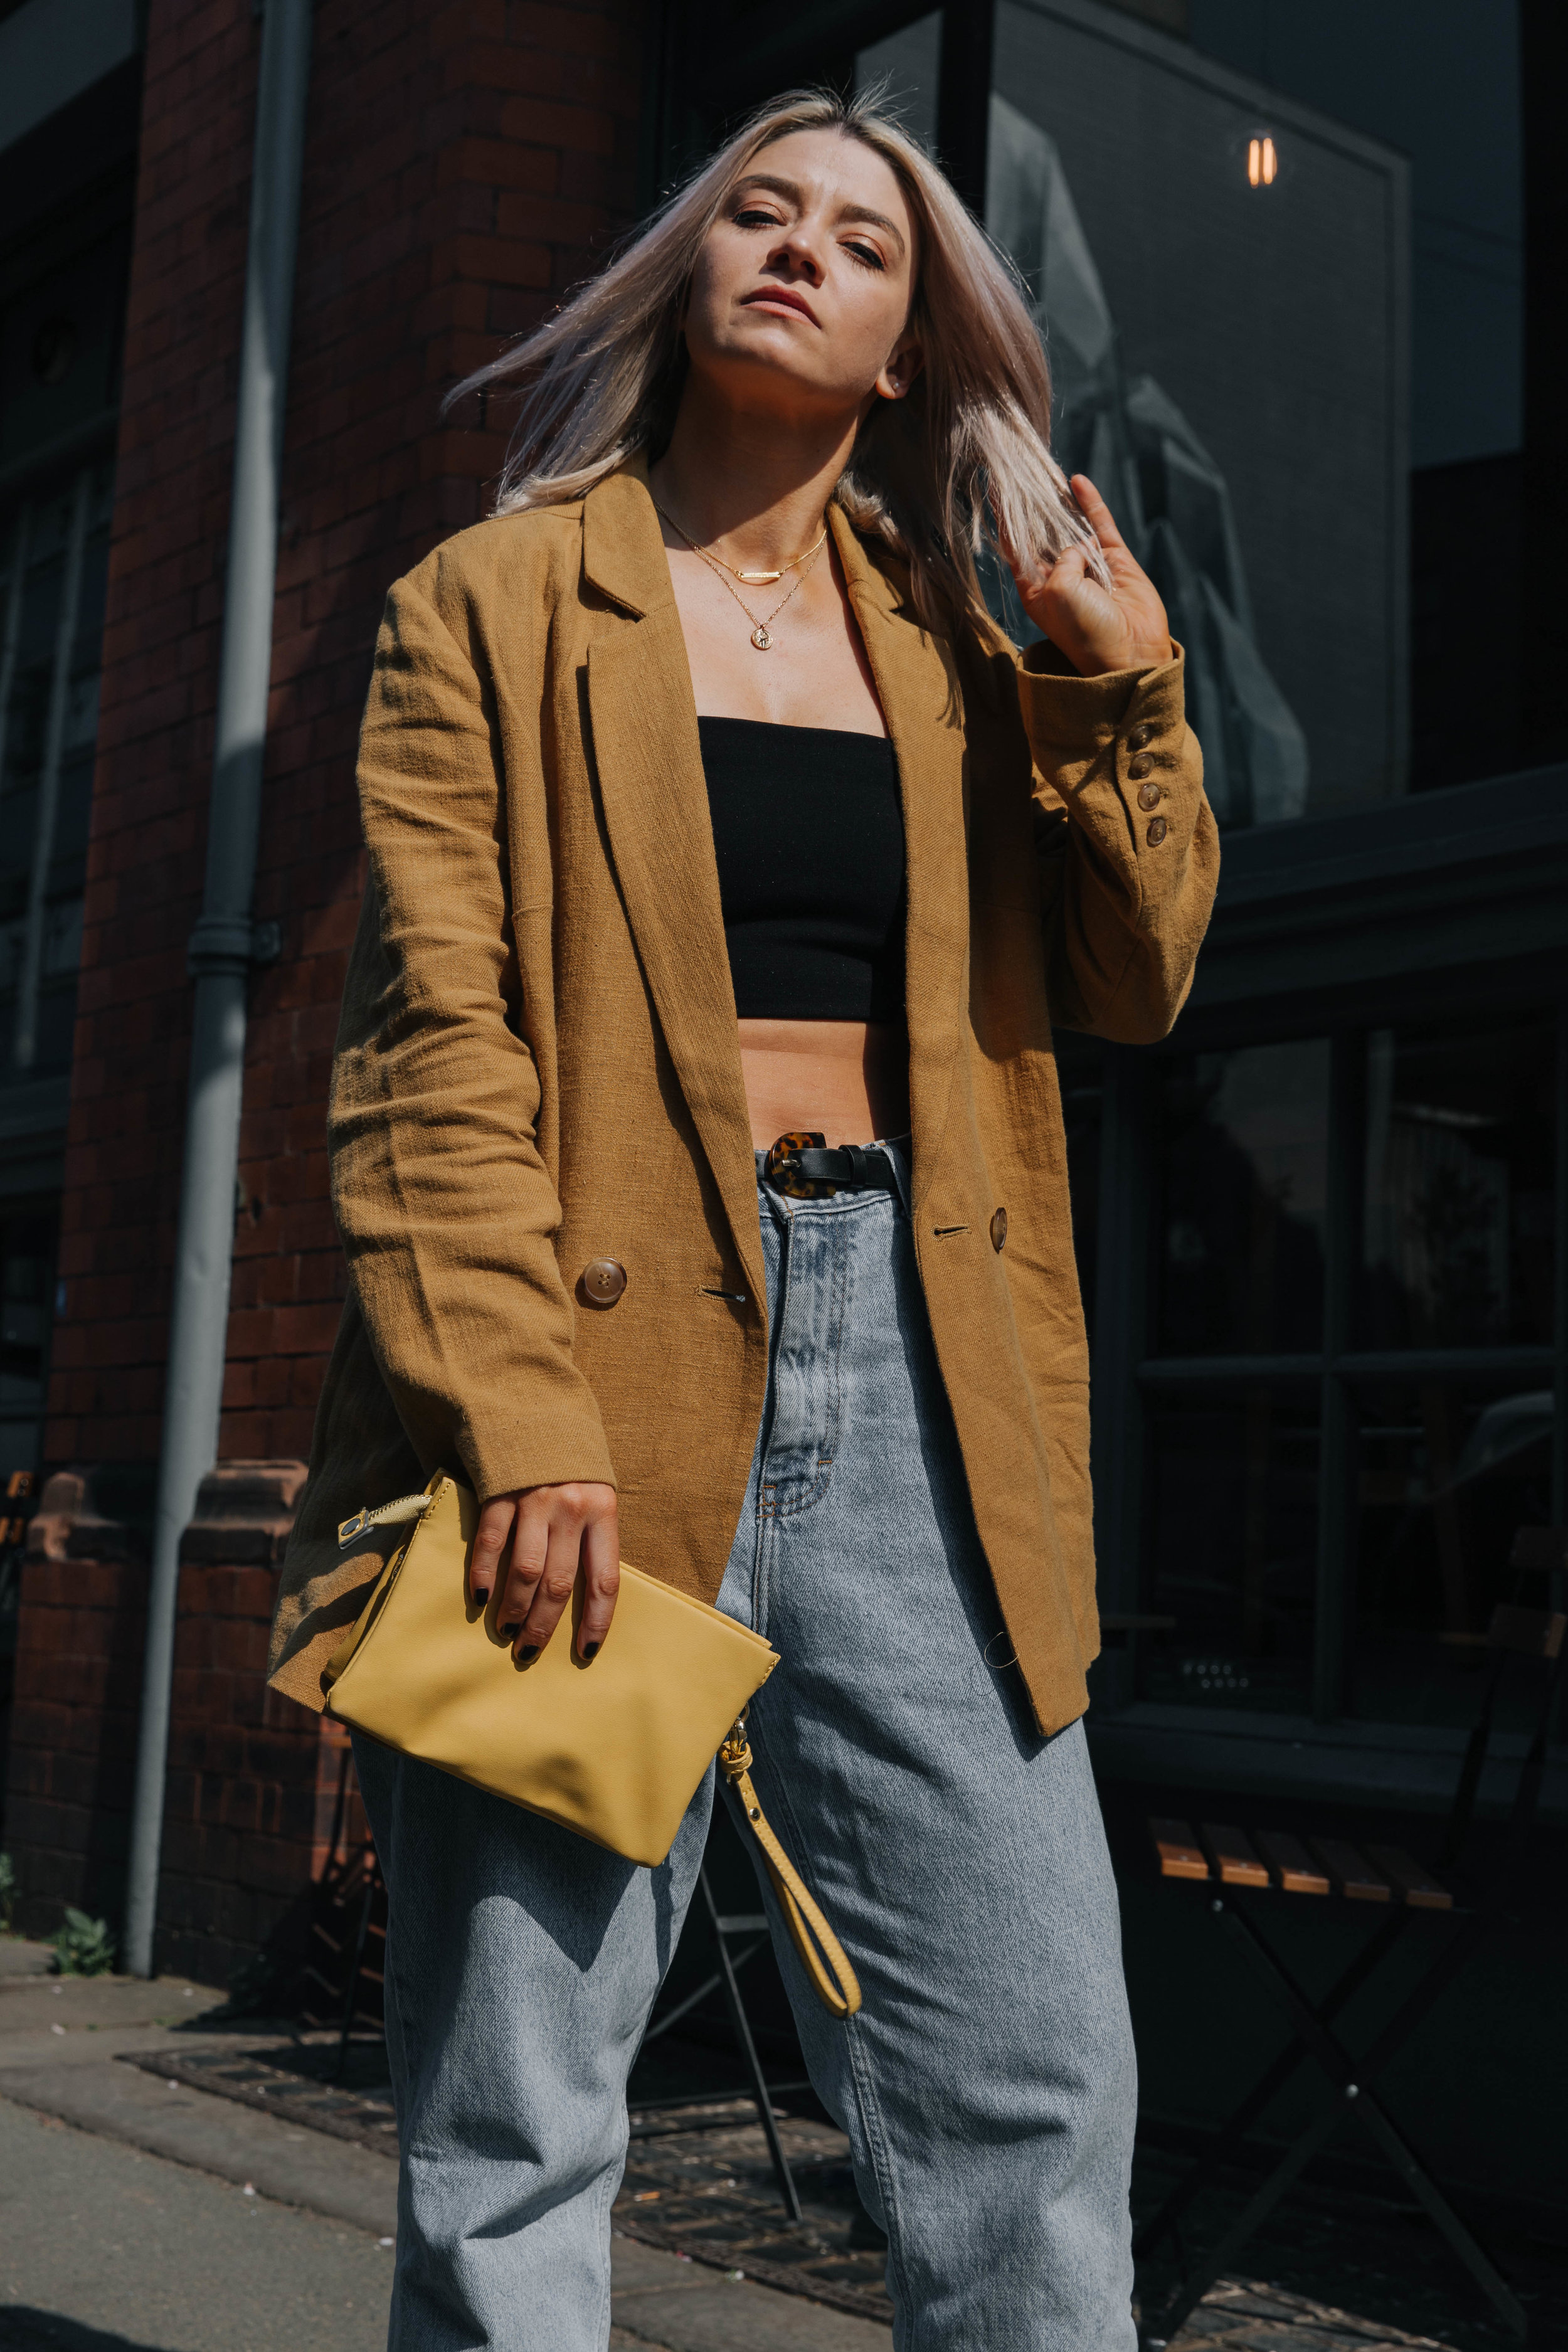 CROP TOP AND VINTAGE JEANS, WITH A BLAZER AND SS19 COWBOYS IN NORTHERN QUARTER, MANCHESTER 4